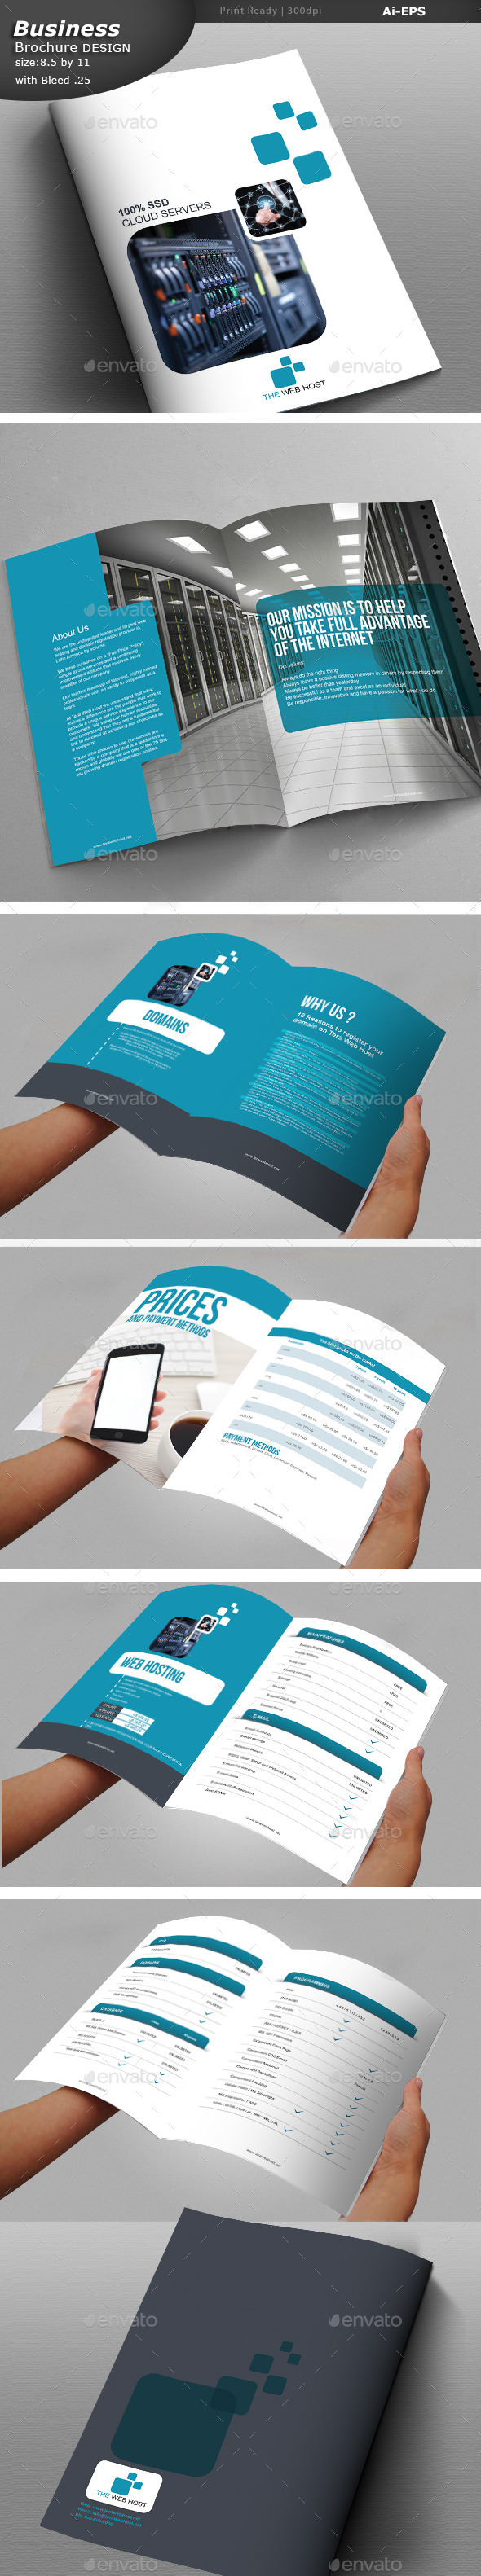 GraphicRiver Web Hosting Brochure Design 10065954